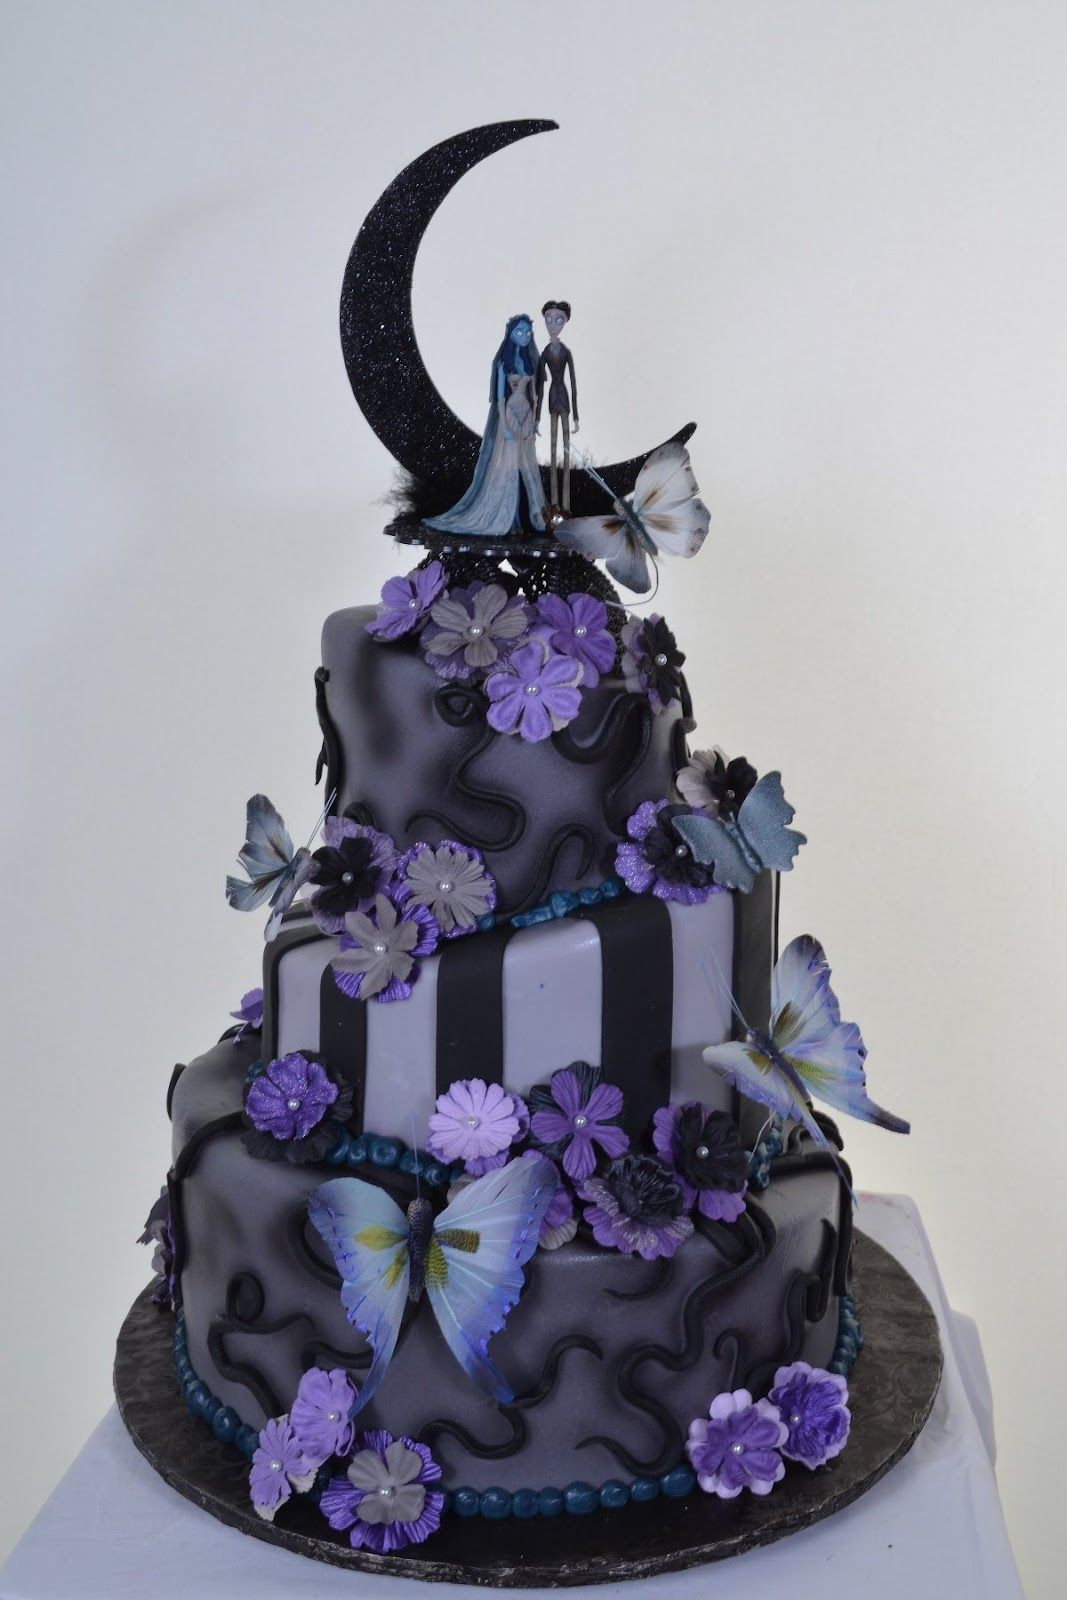 nightmare before christmas wedding theme wedding cakes pictures nightmare before christmas cake wedding ideas - Nightmare Before Christmas Wedding Decorations